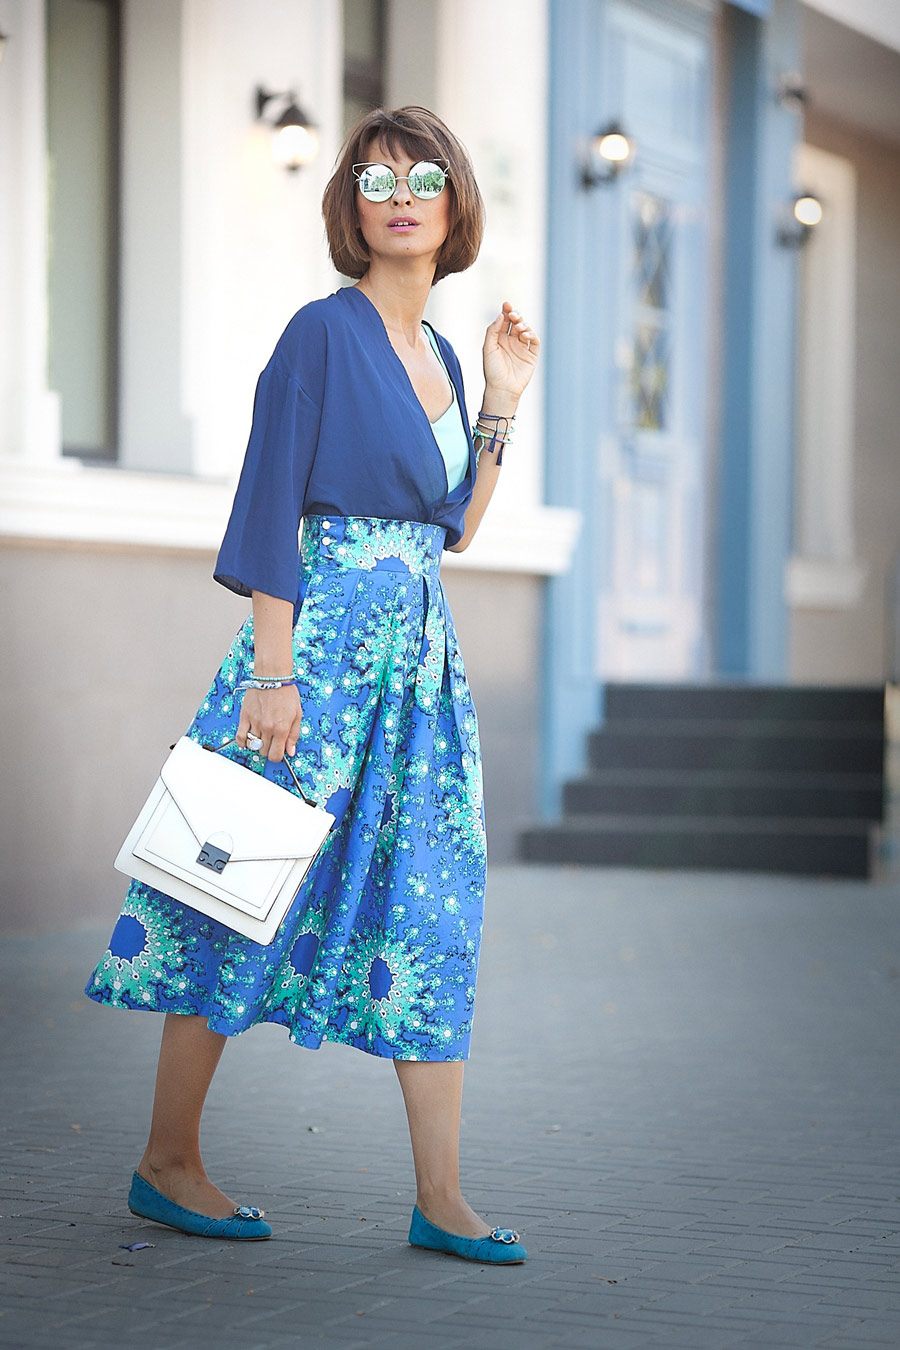 summer street style, blue in fashion , summer styles, loeffler randall bag, ellena galant